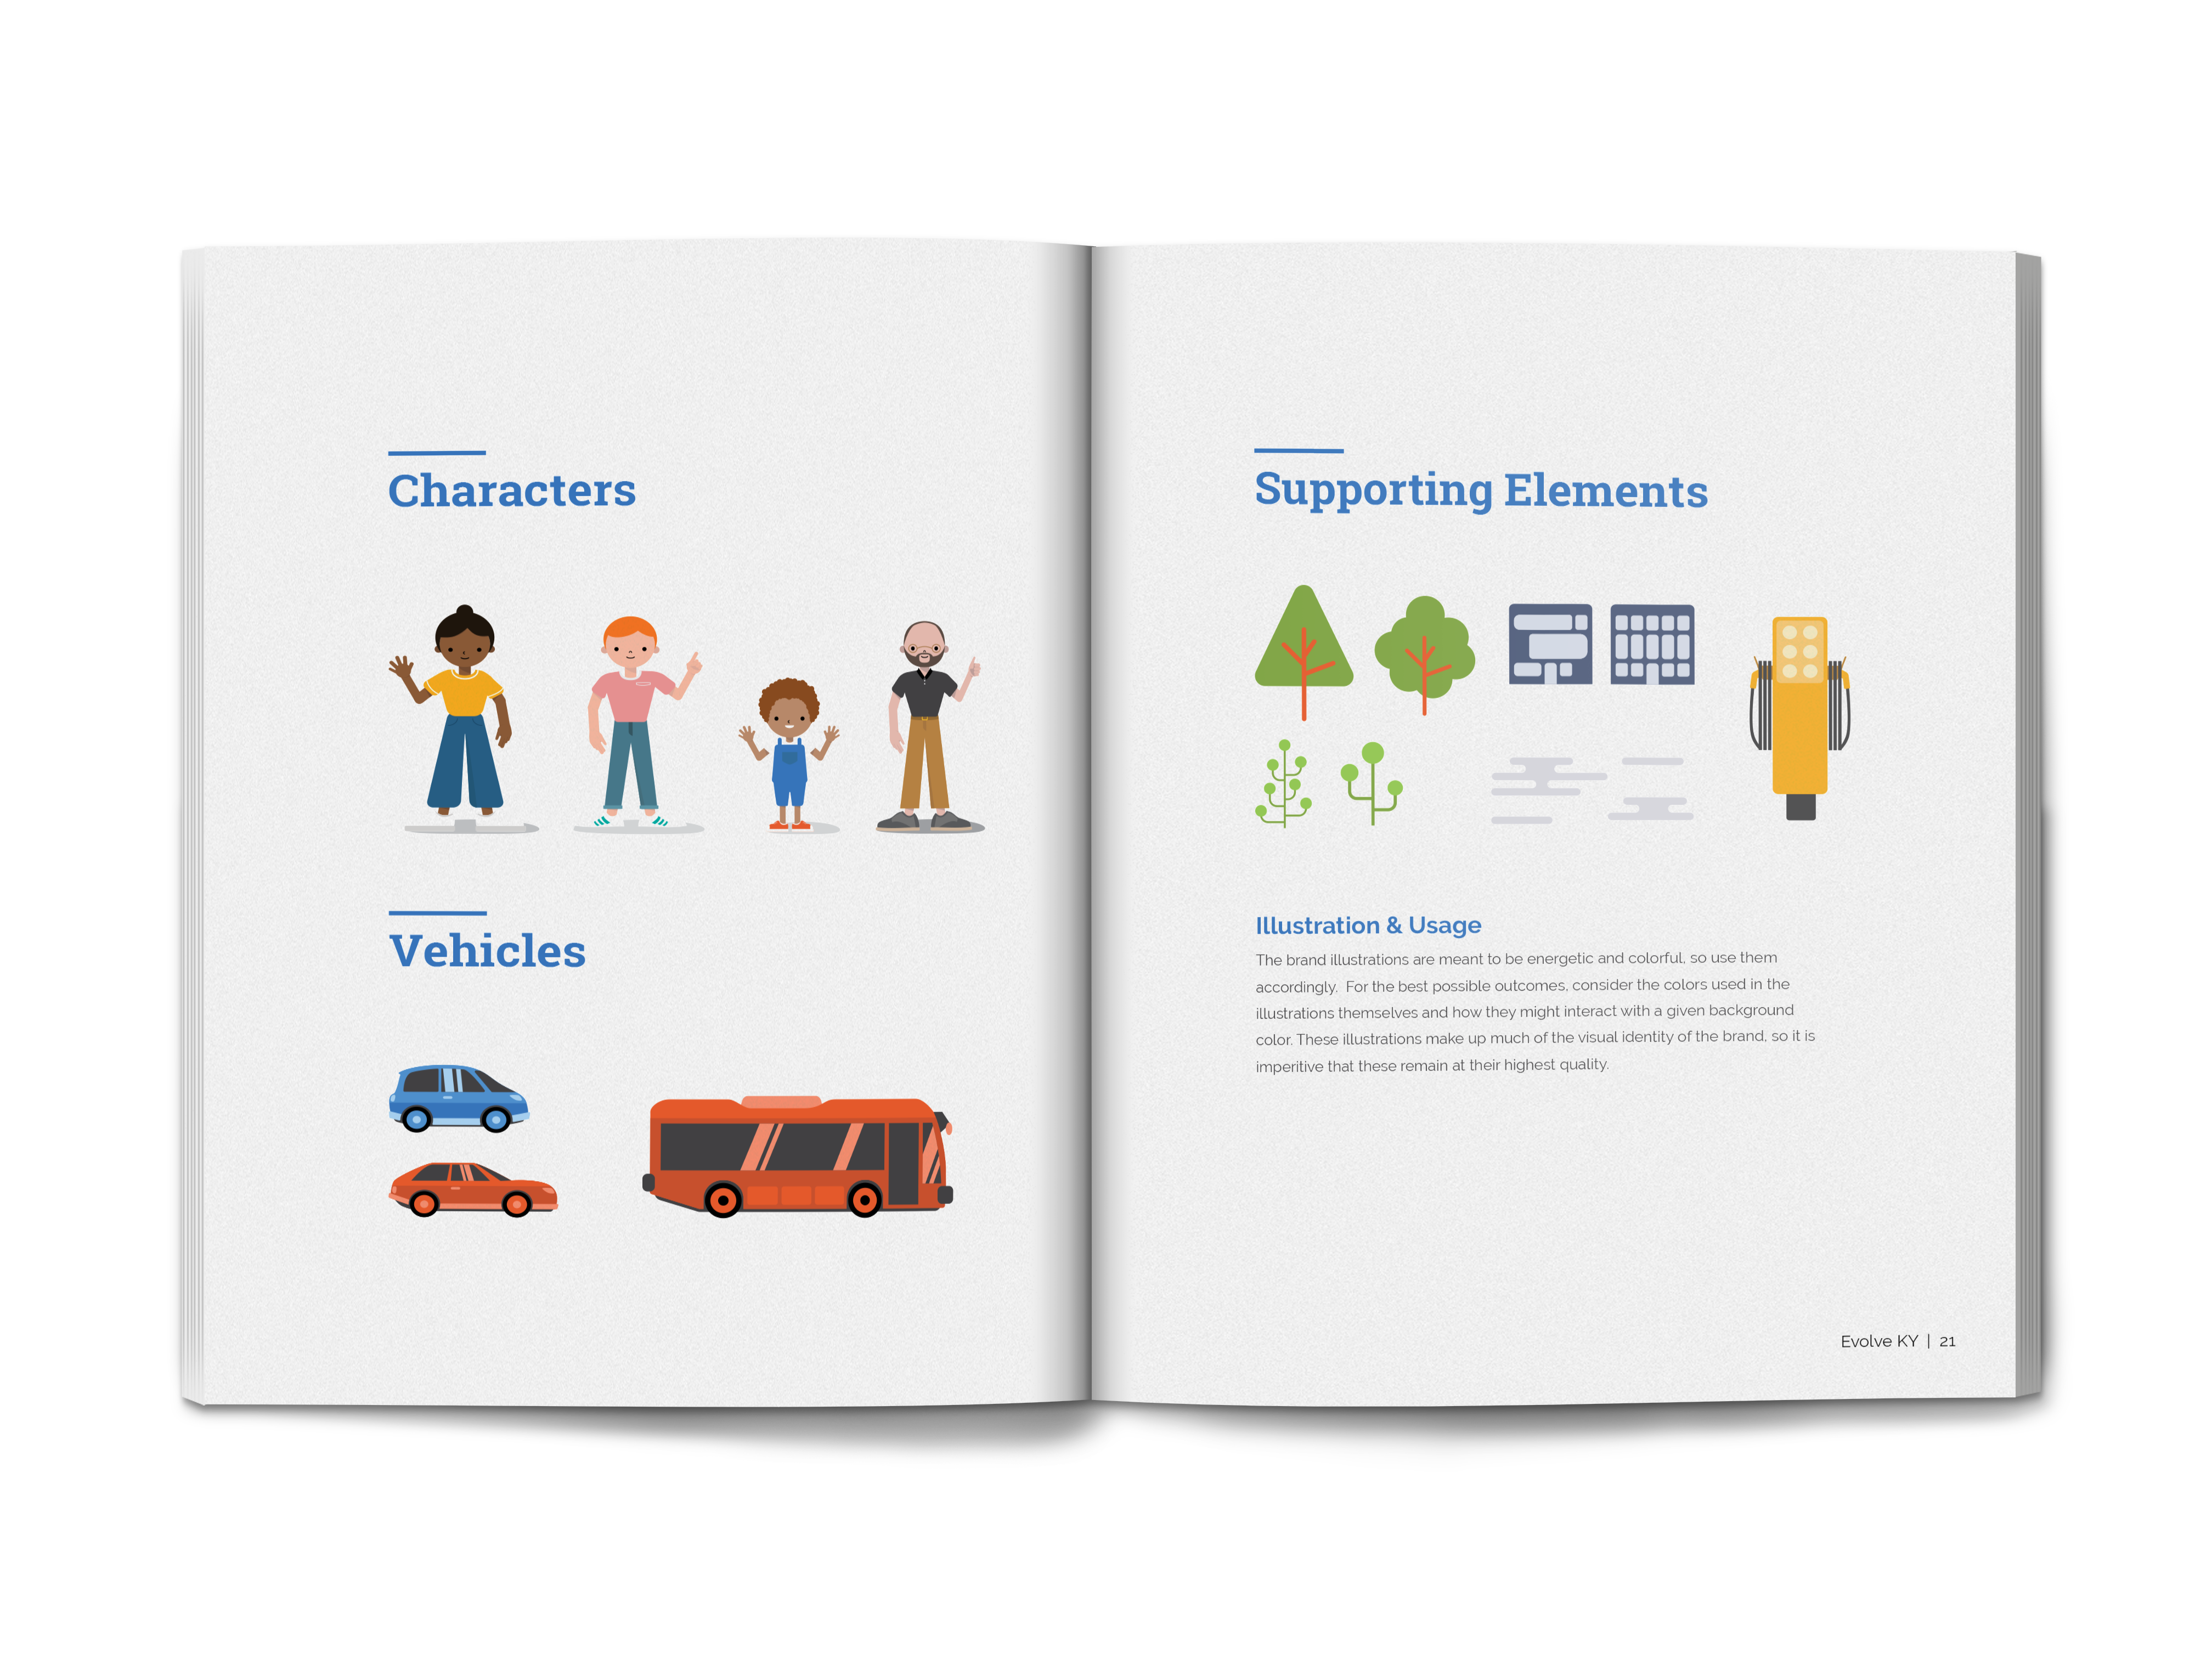 mockup of Evolve KY's brand standards guide outlining the illustrations and characters created for them